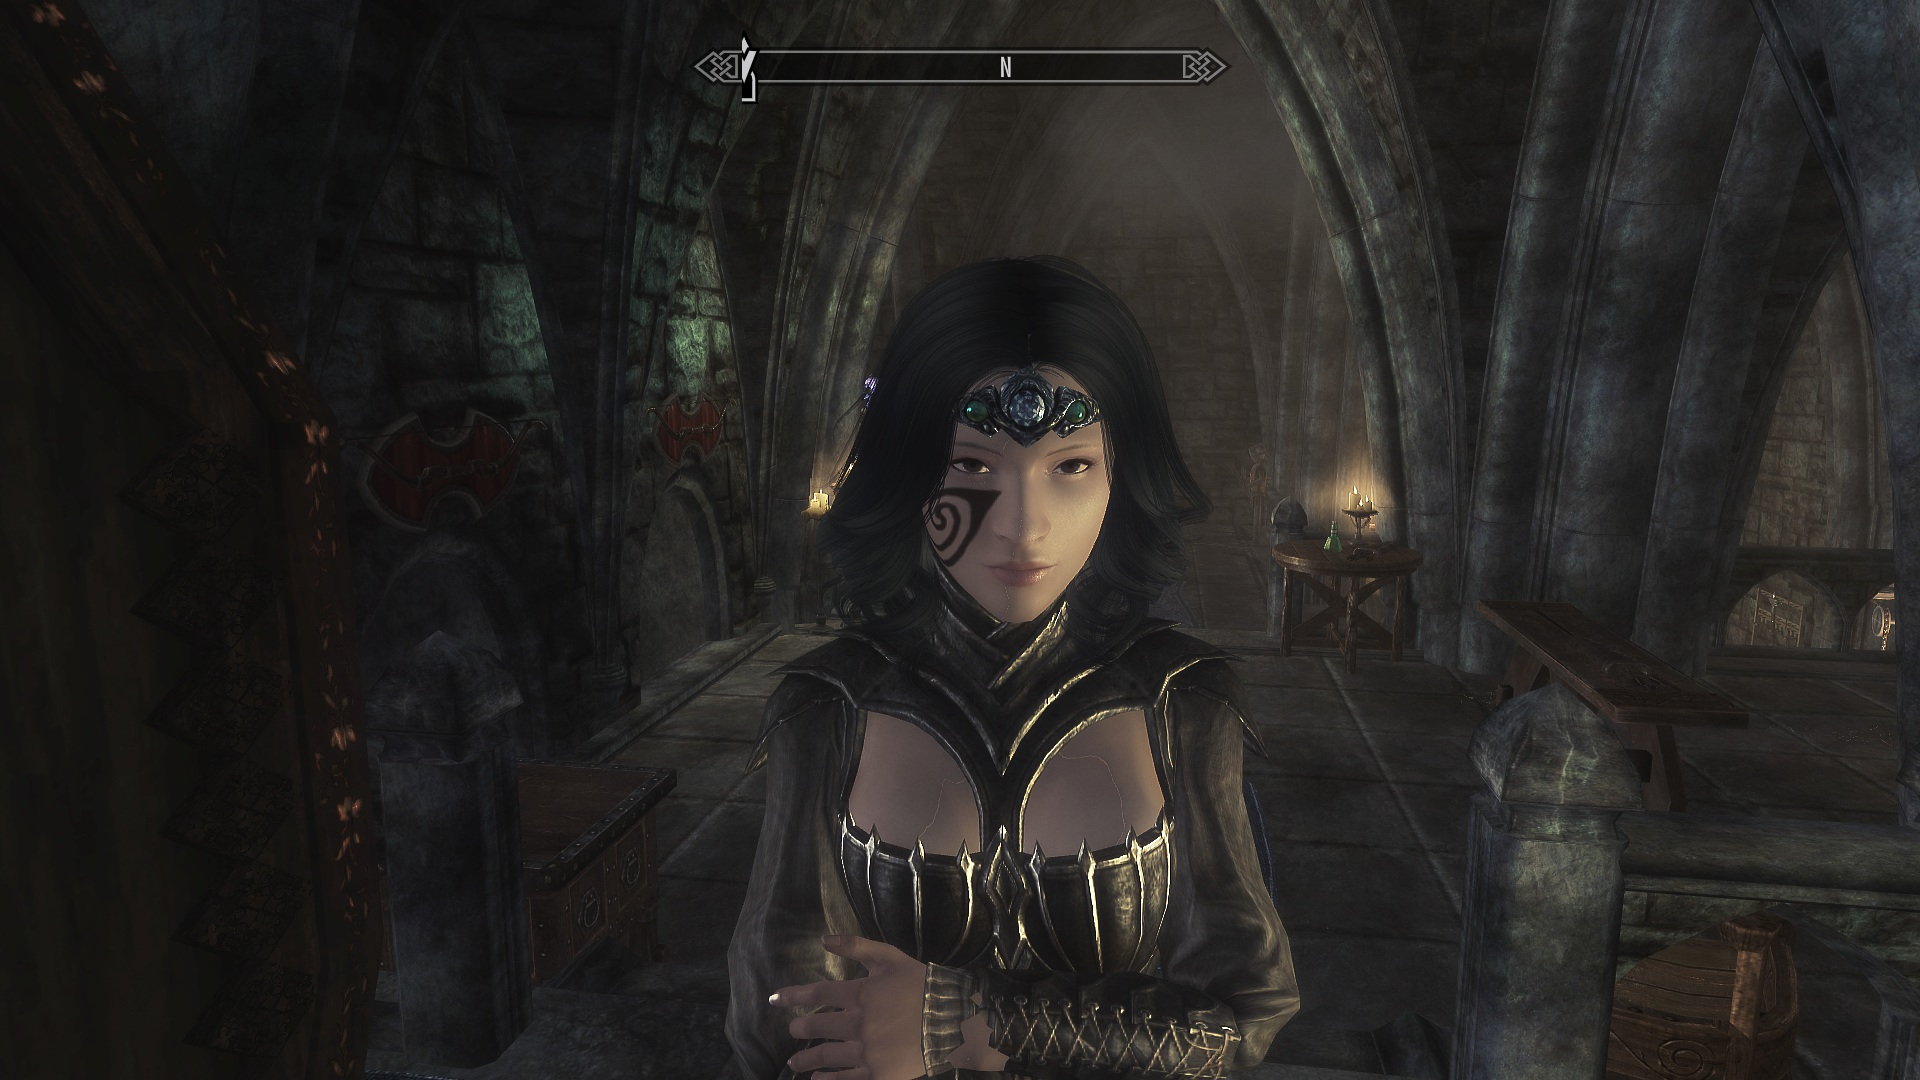 Dawnguard vampires retain your appearance at skyrim nexus mods view image uploaded at 127 21 aug 2012 voltagebd Choice Image